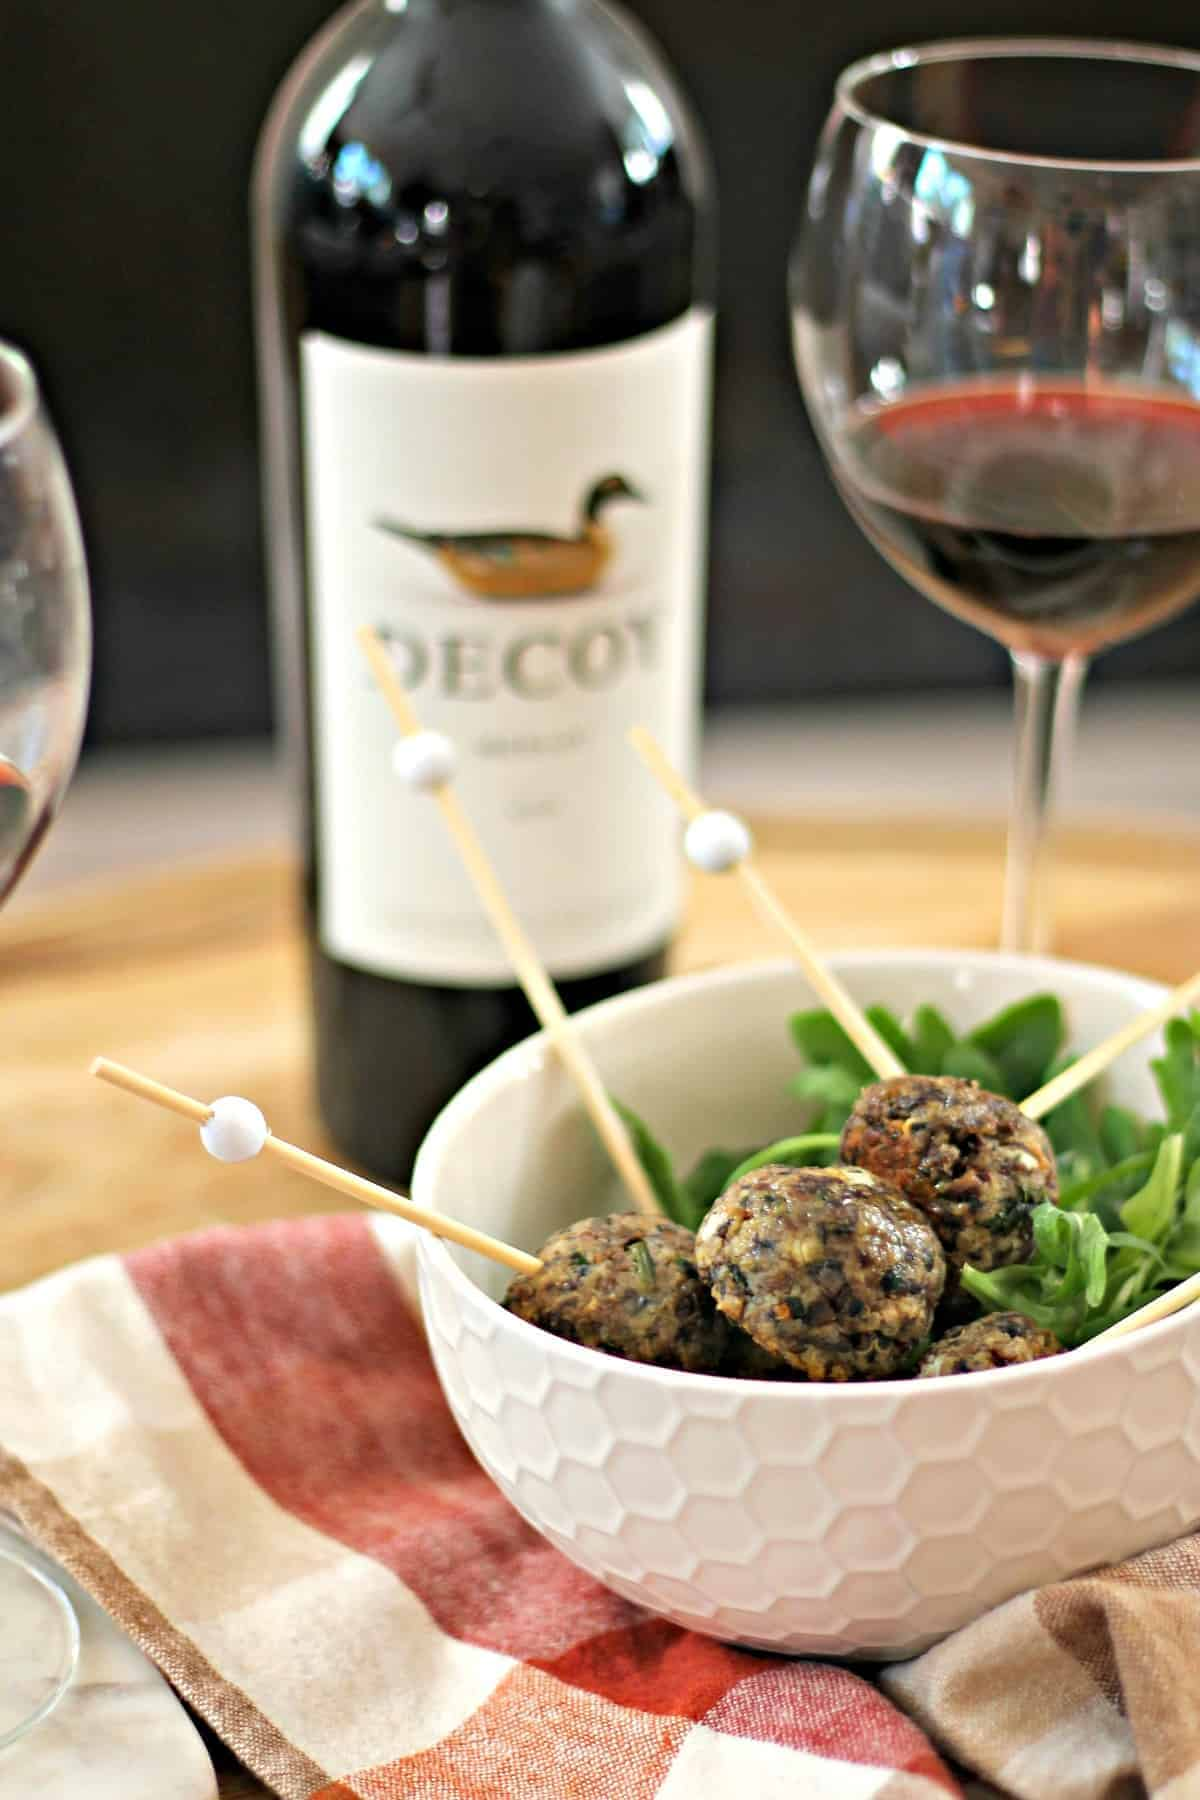 Vegetarian meatballs in a white bowl with merlot wine in the background.